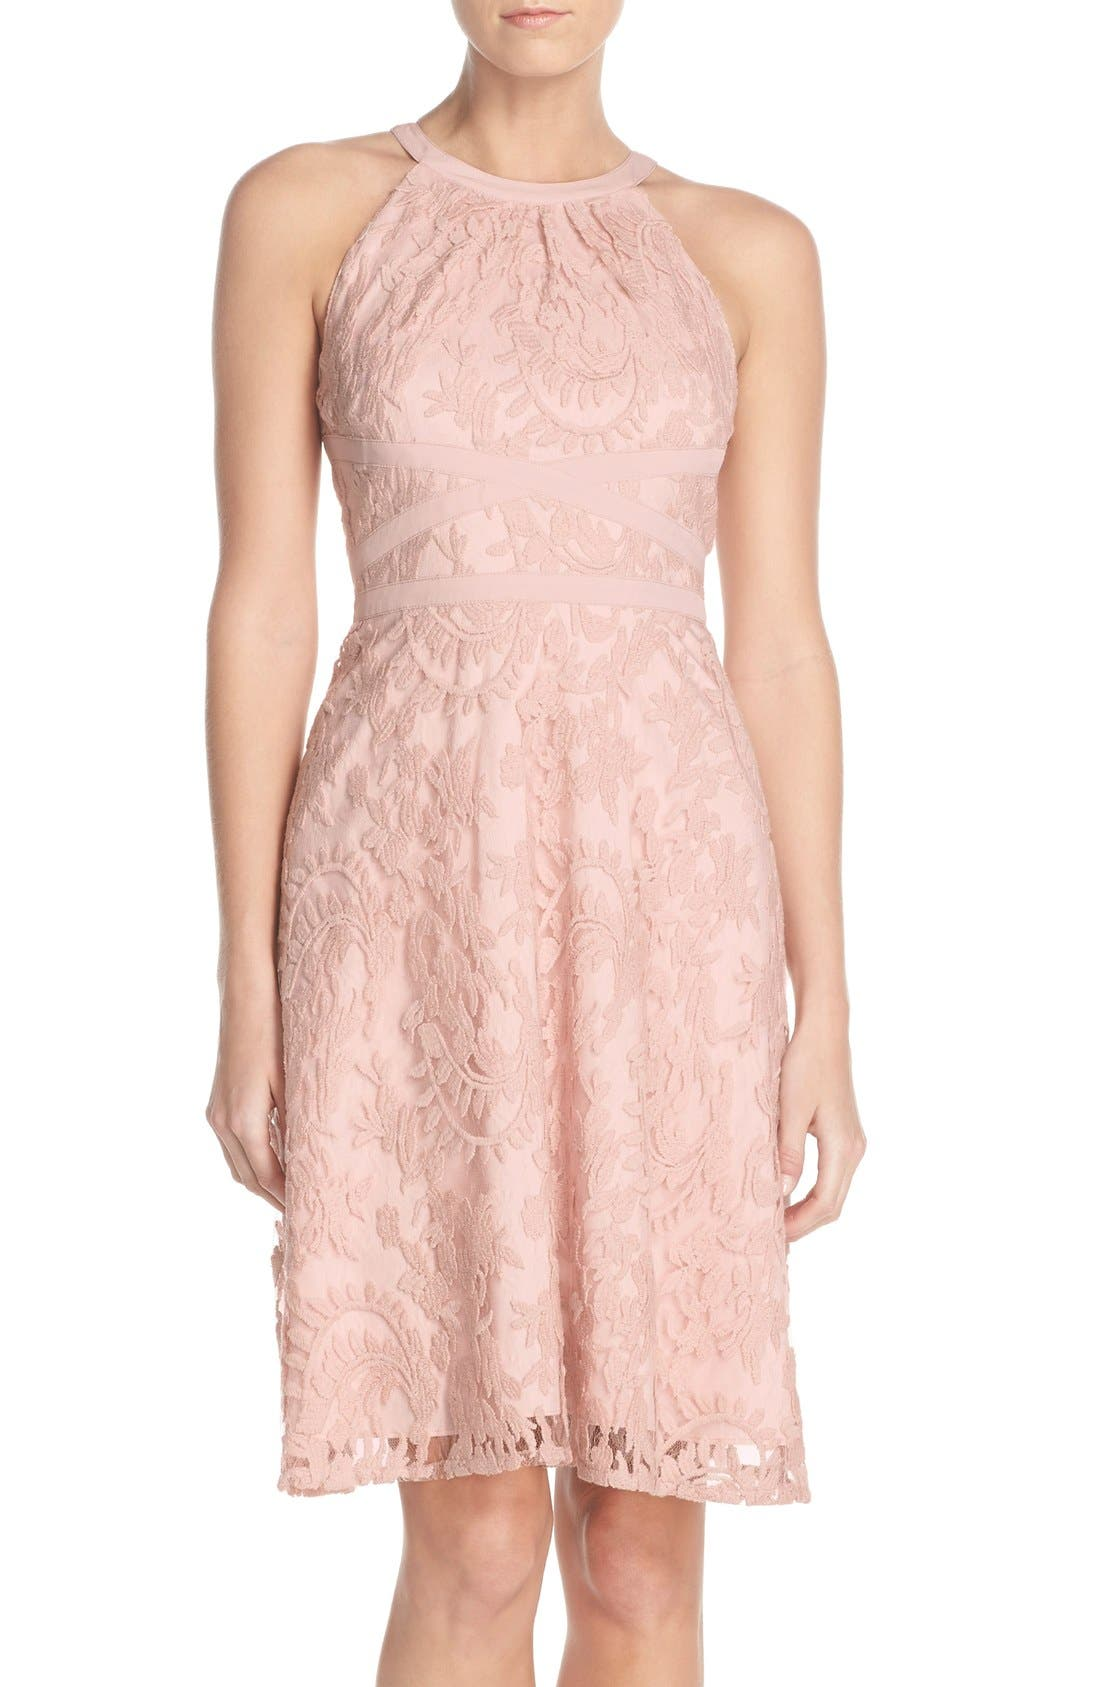 Alternate Image 1 Selected - Adrianna Papell Embroidered Lace Fit & Flare Dress (Regular & Petite)